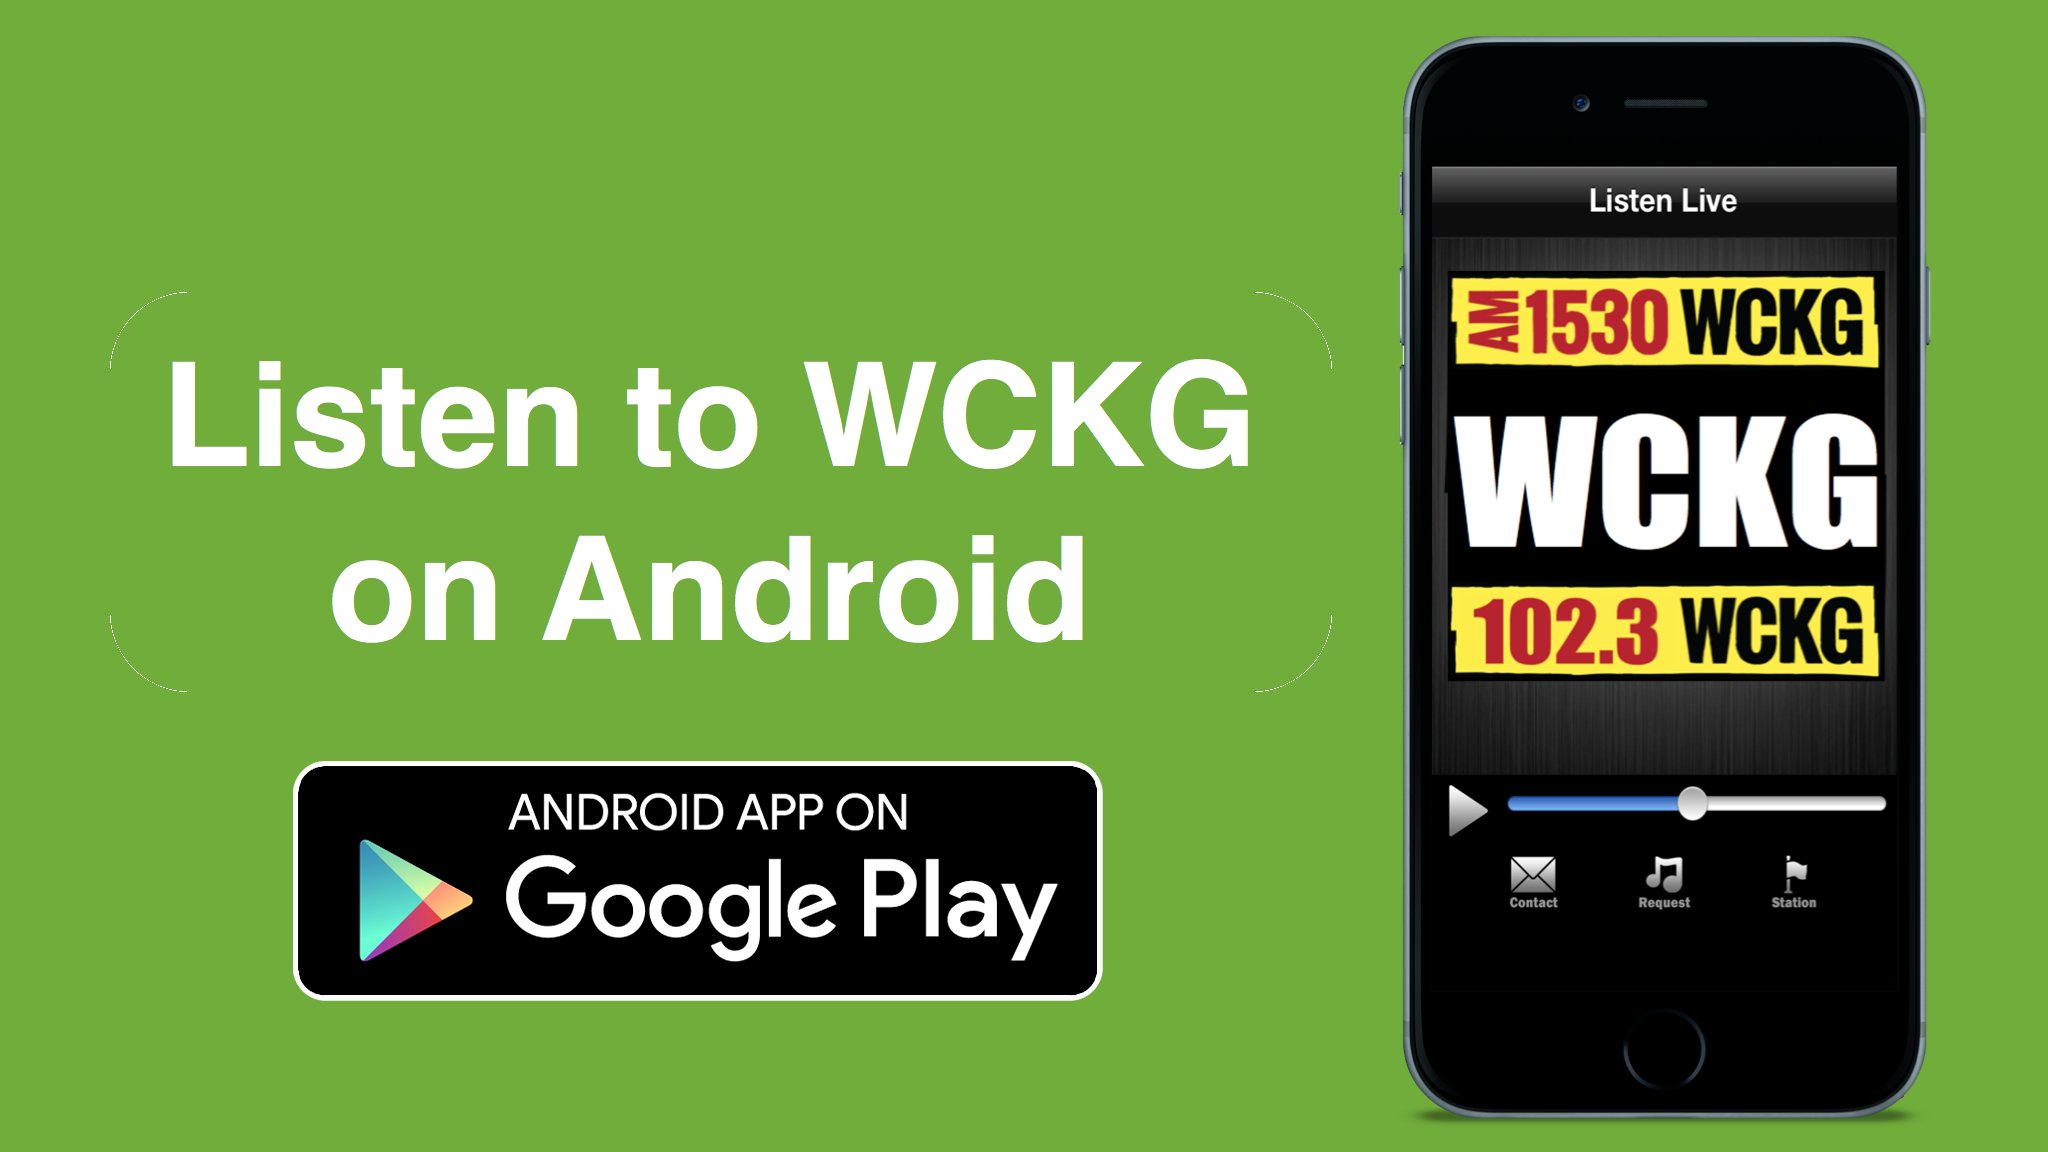 Get the WCKG App for Android